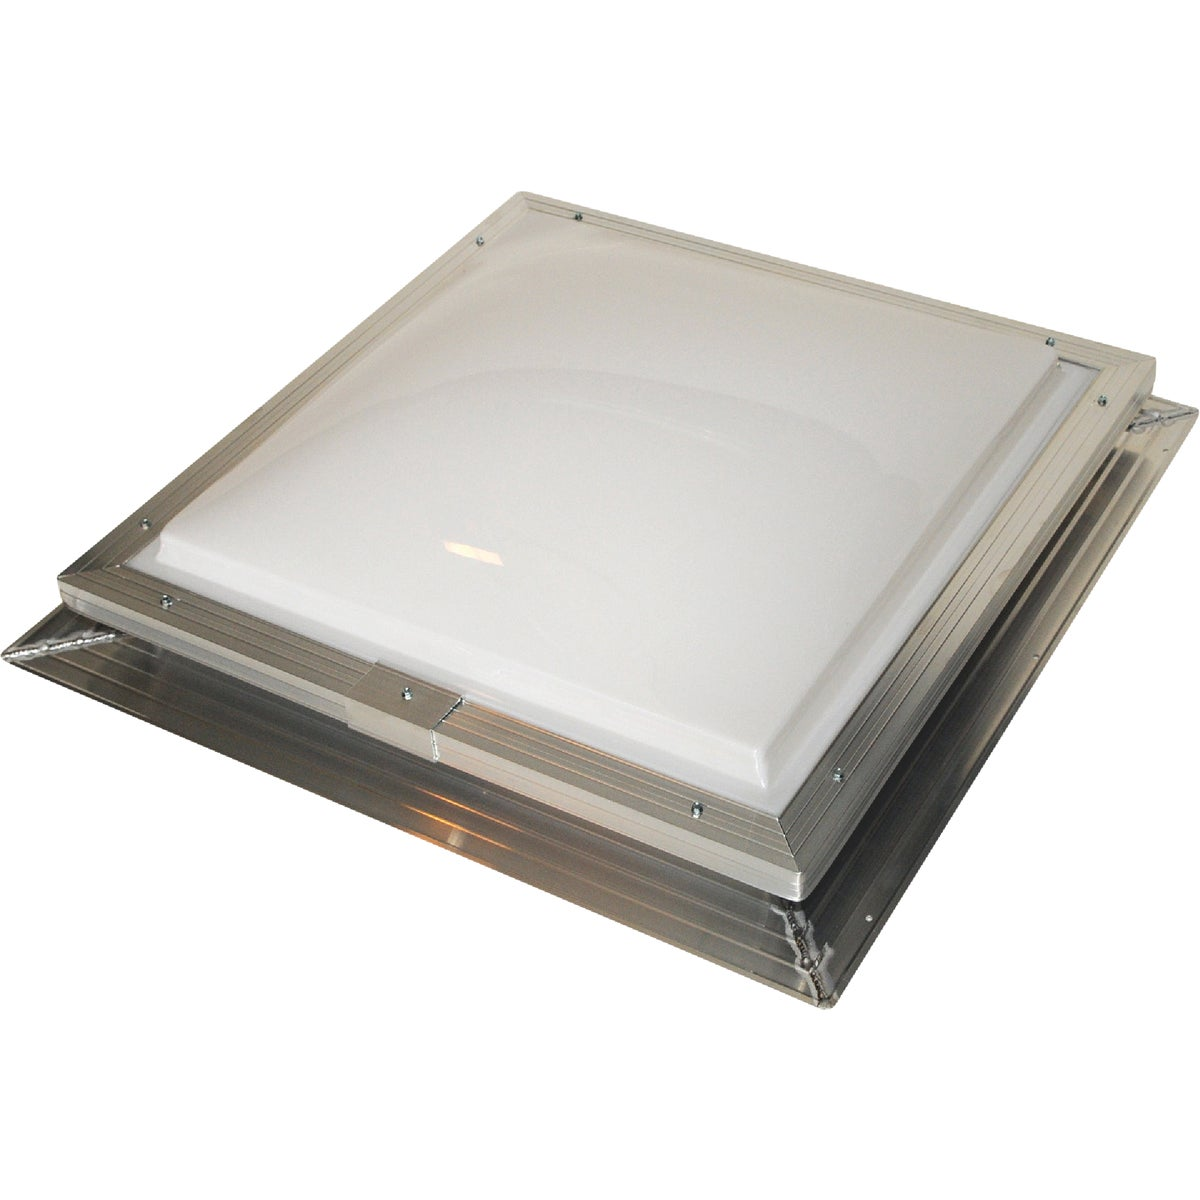 2X2 WH/CL 2DOME SKYLIGHT - SFA2222WCN by Sun Tek Manuf Inc